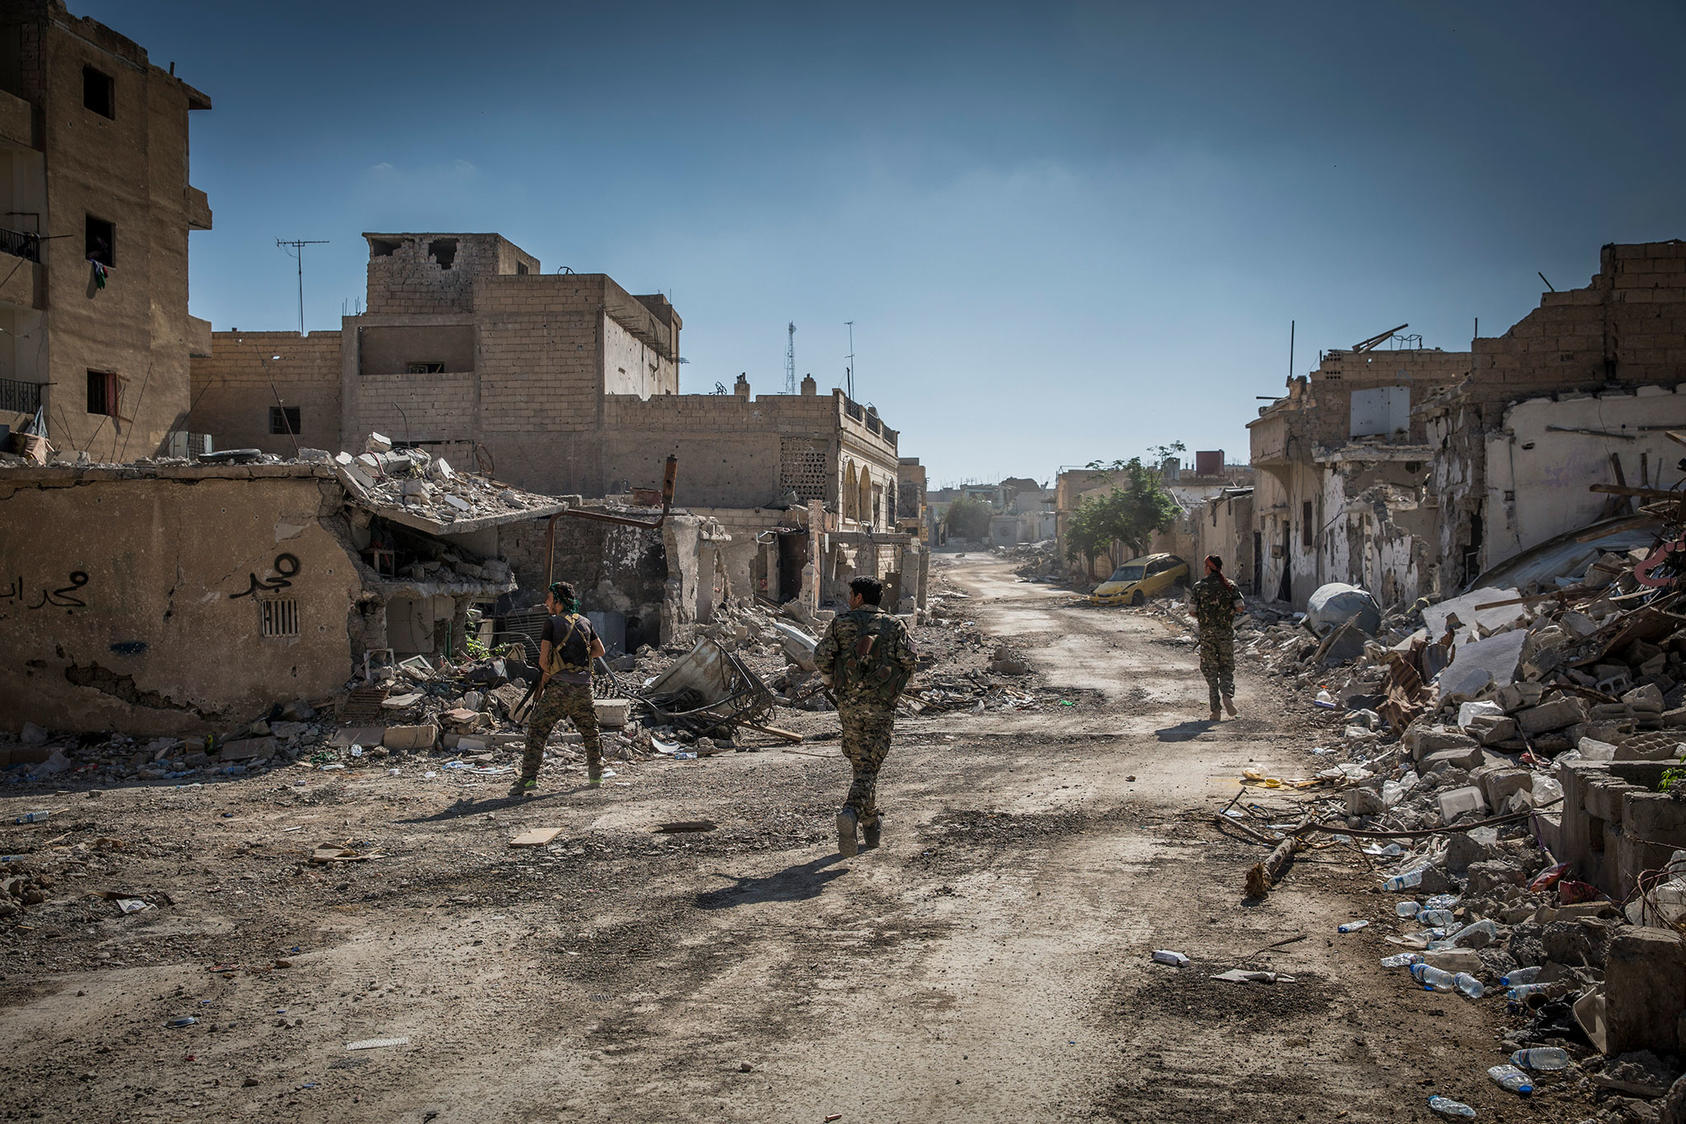 Soldiers with the Syrian Democratic Forces move through the destroyed streets of east Raqqa